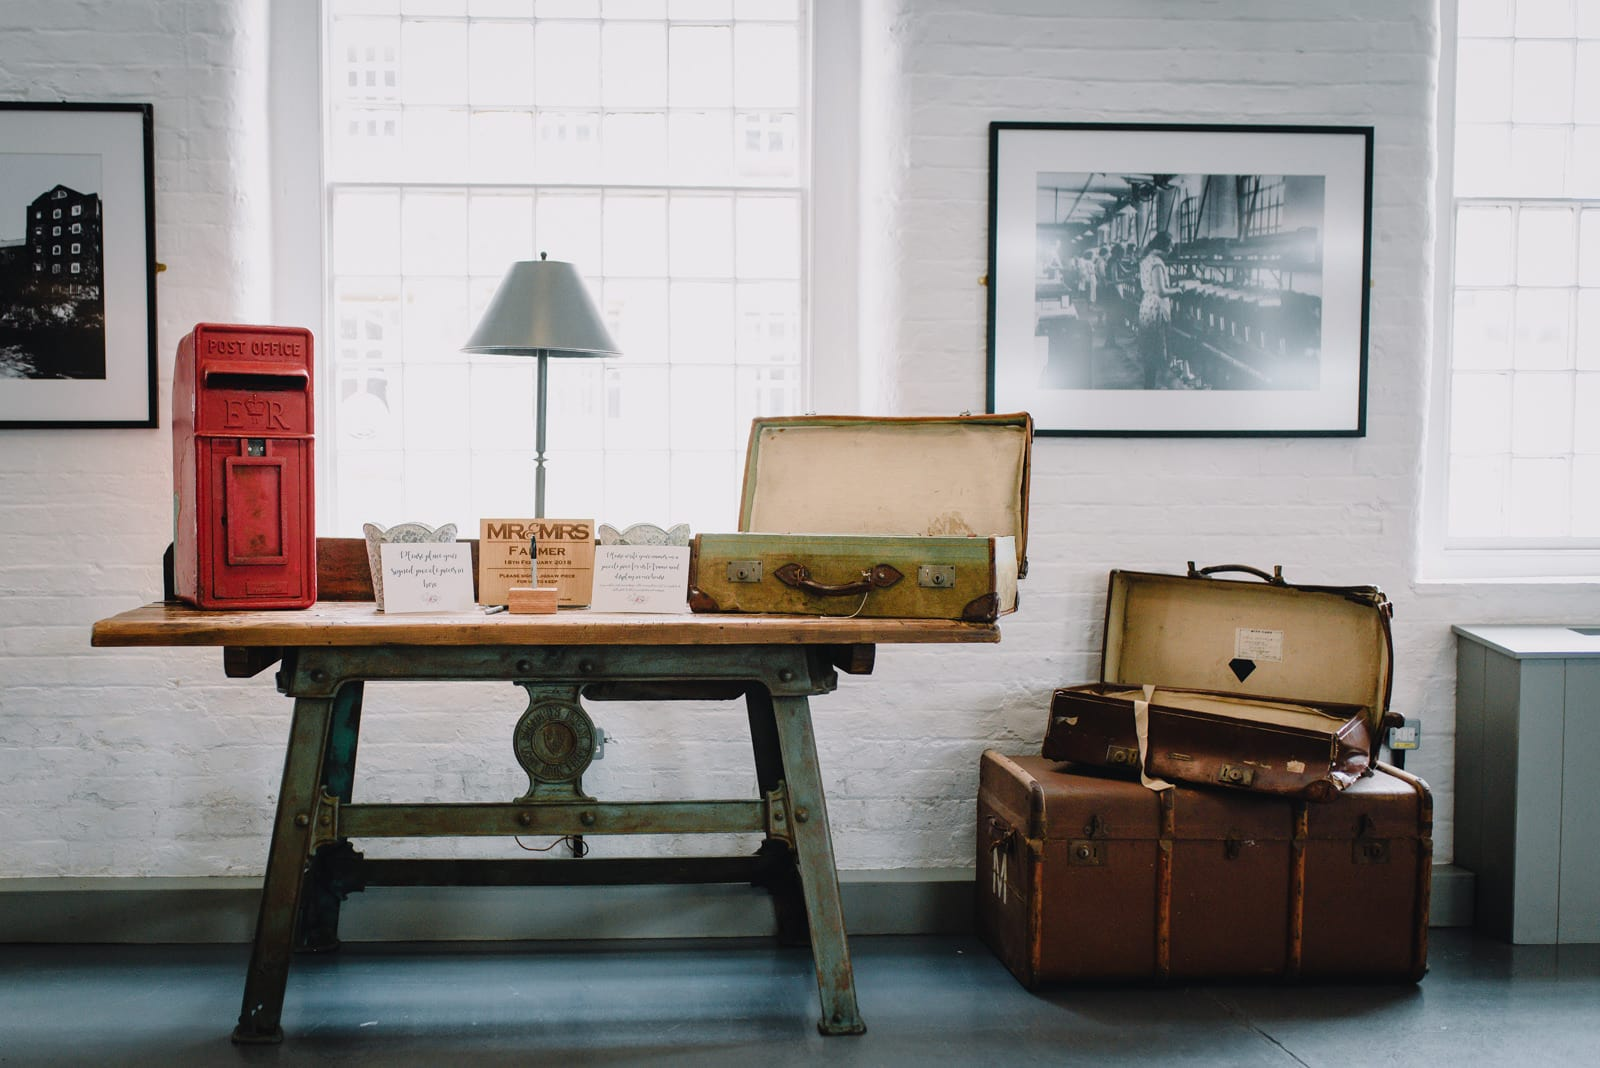 postbox and vintage suitcase